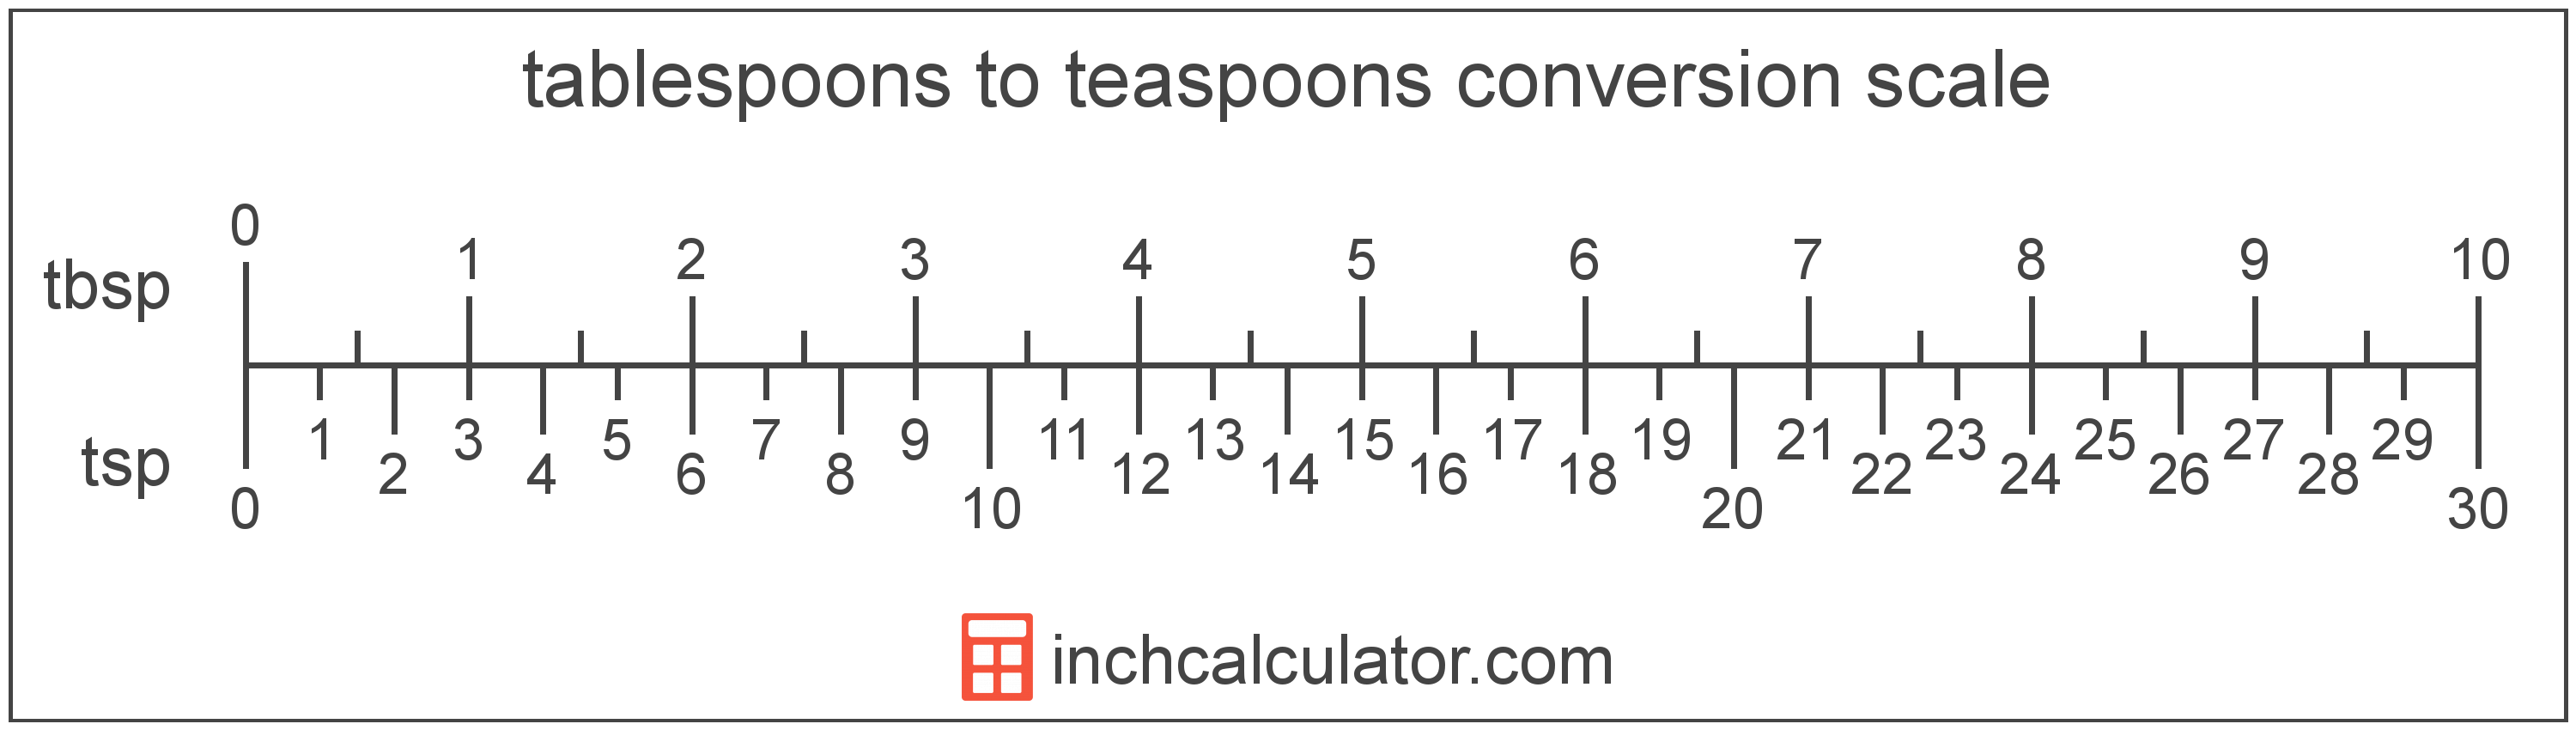 Teaspoons To Tablespoons Conversion Tsp To Tbsp